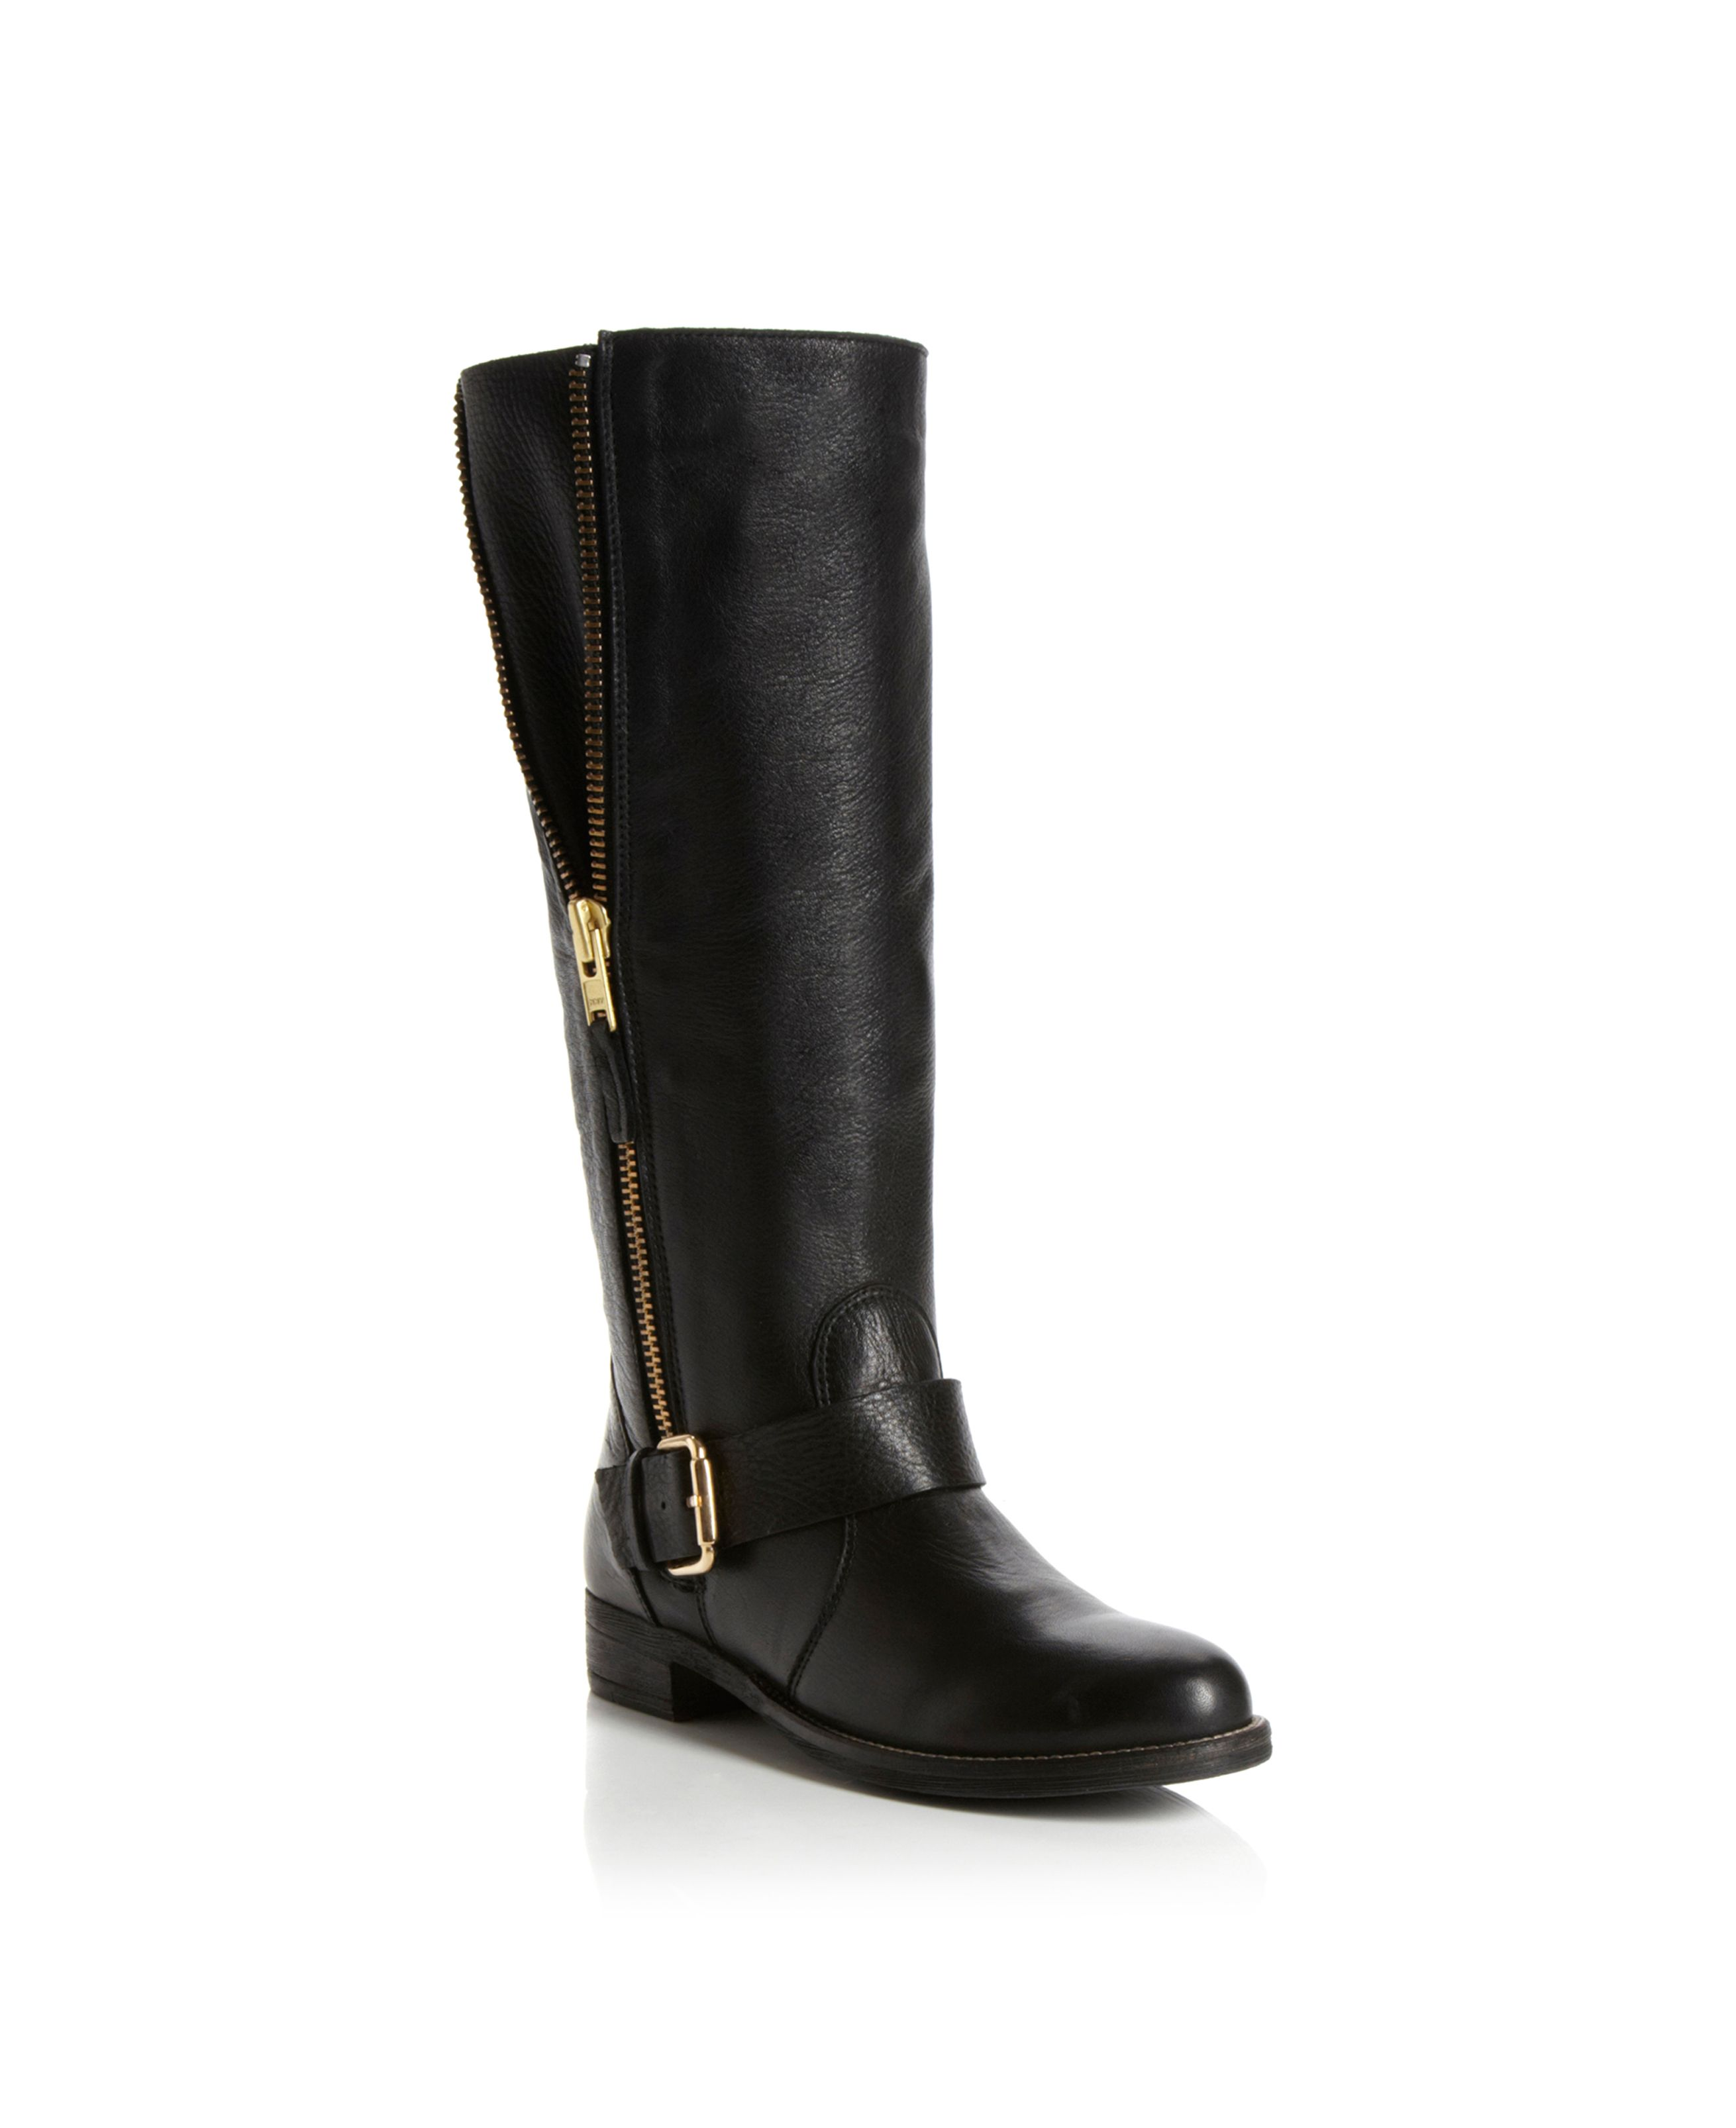 Tammy High Leg Gold Trim Biker Boots